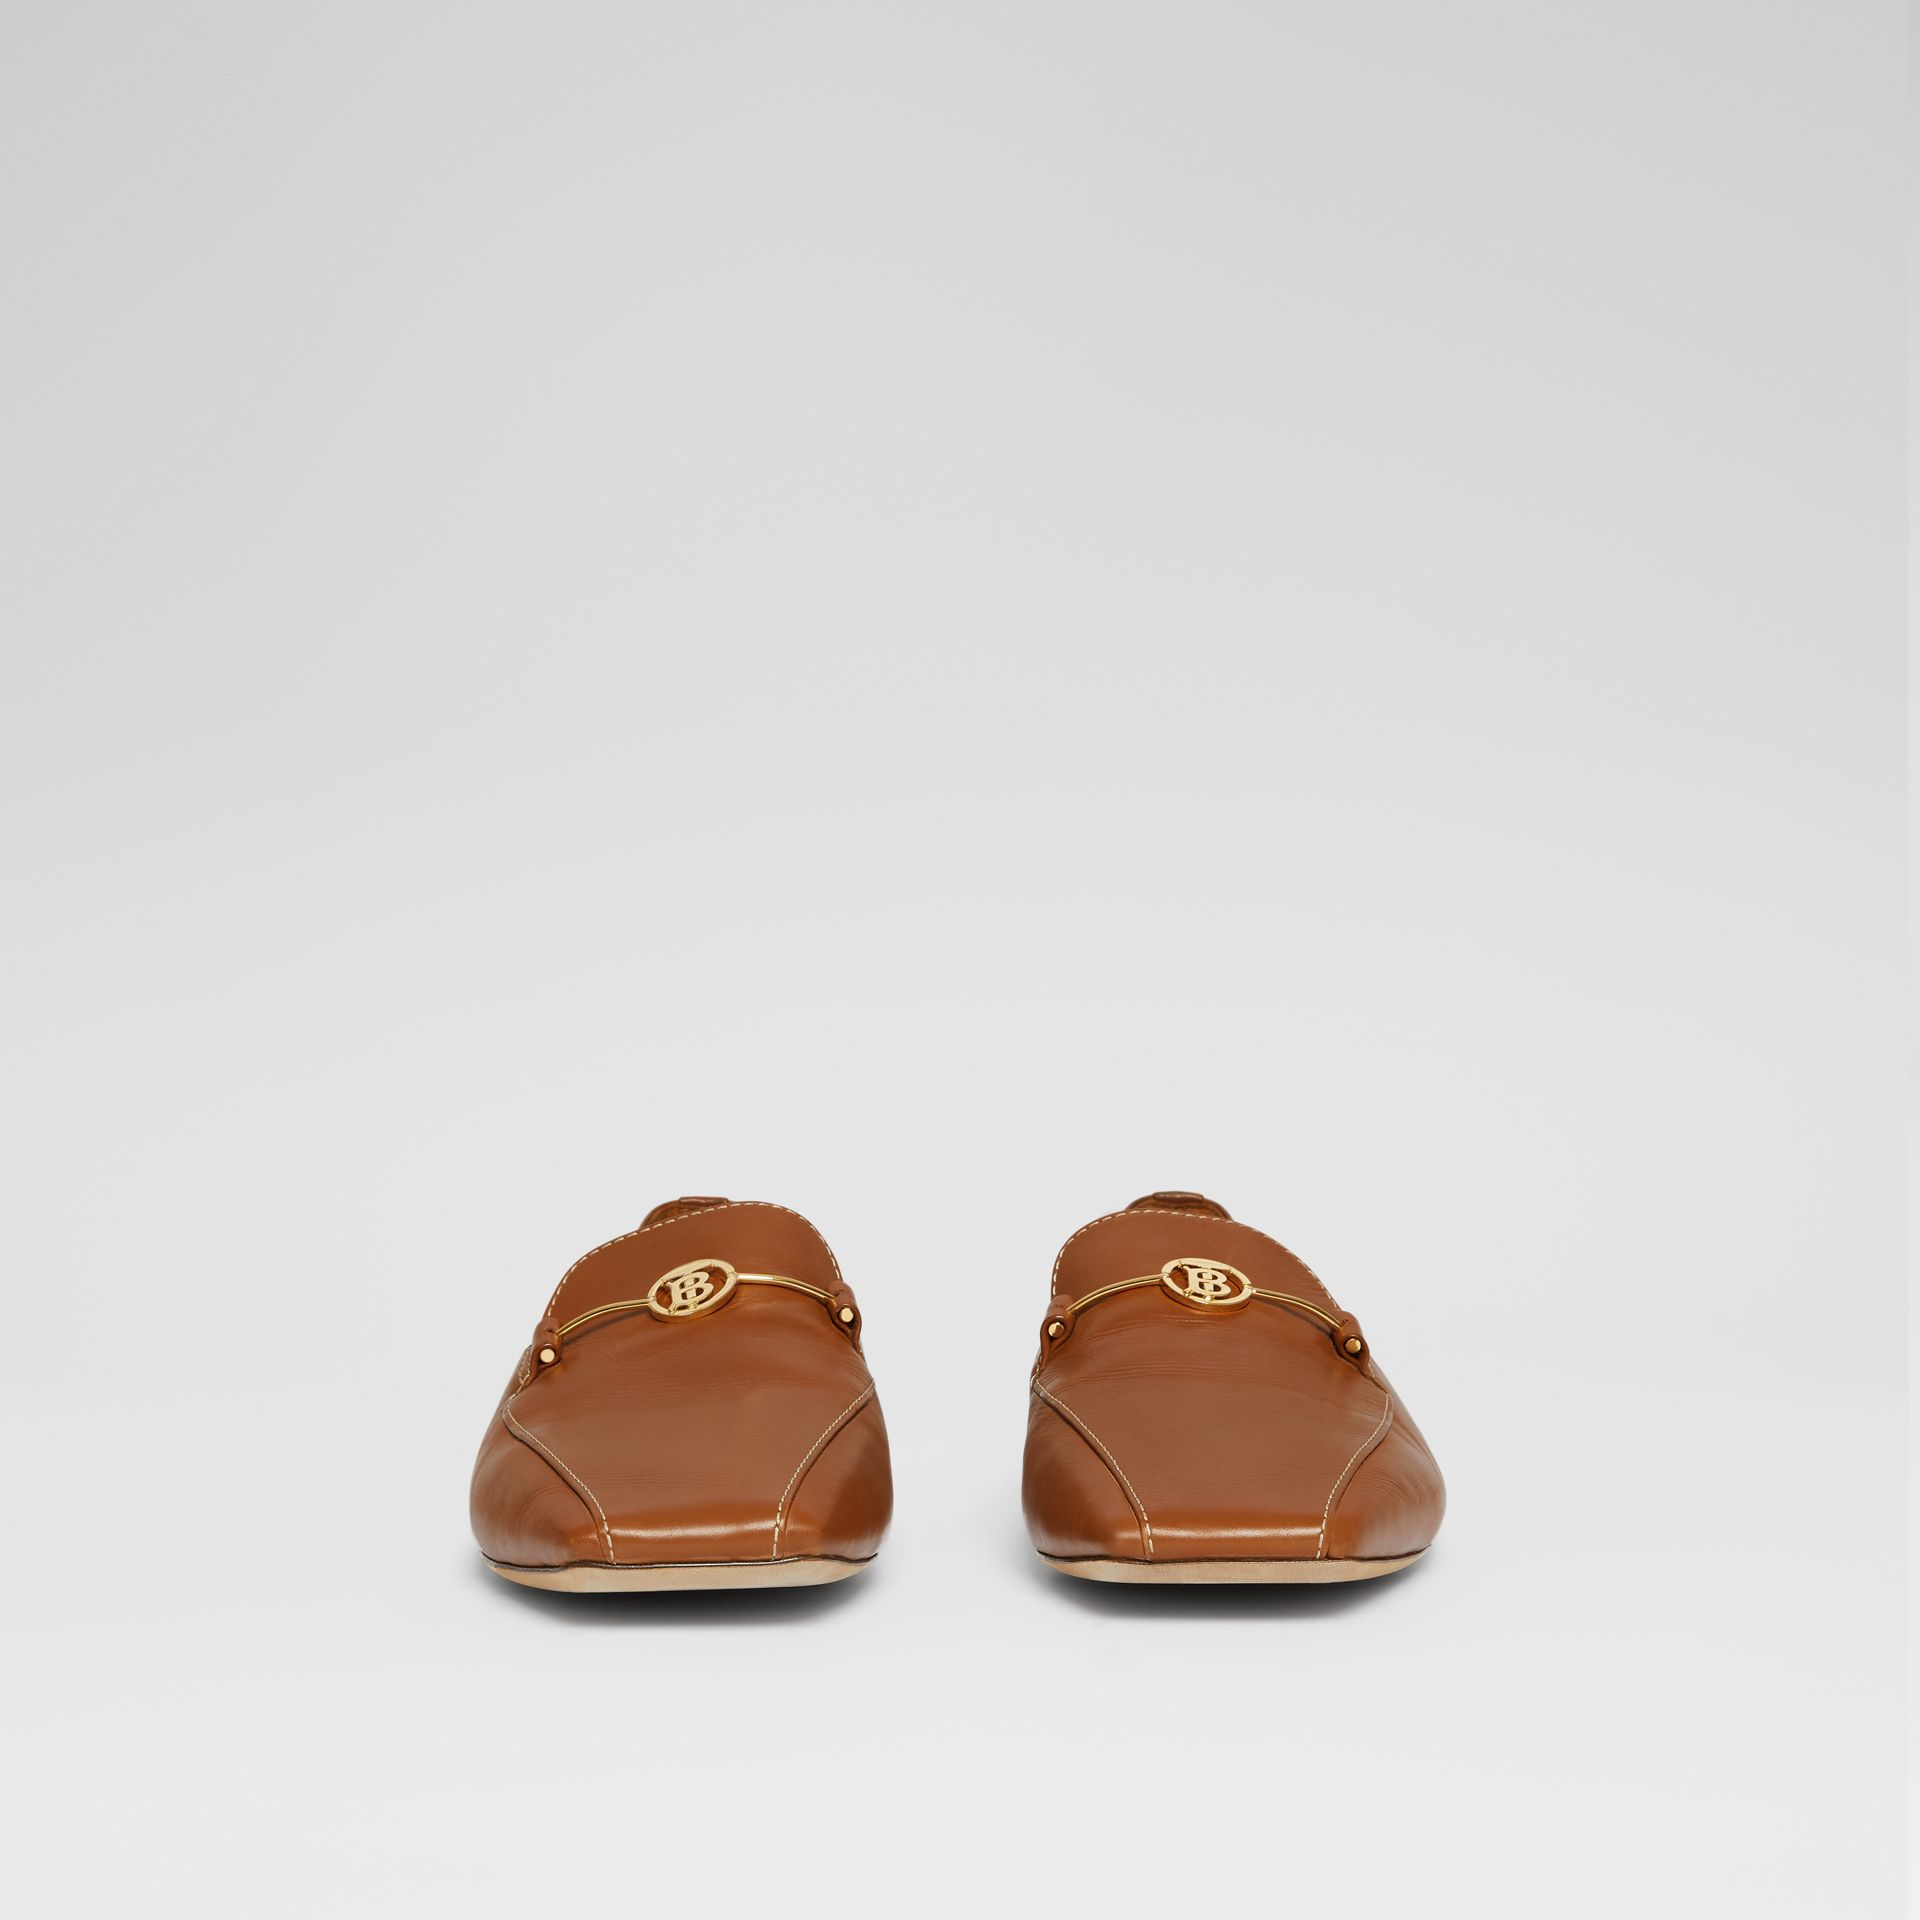 Monogram Motif Leather Loafers in Tan - Women | Burberry Australia - gallery image 3